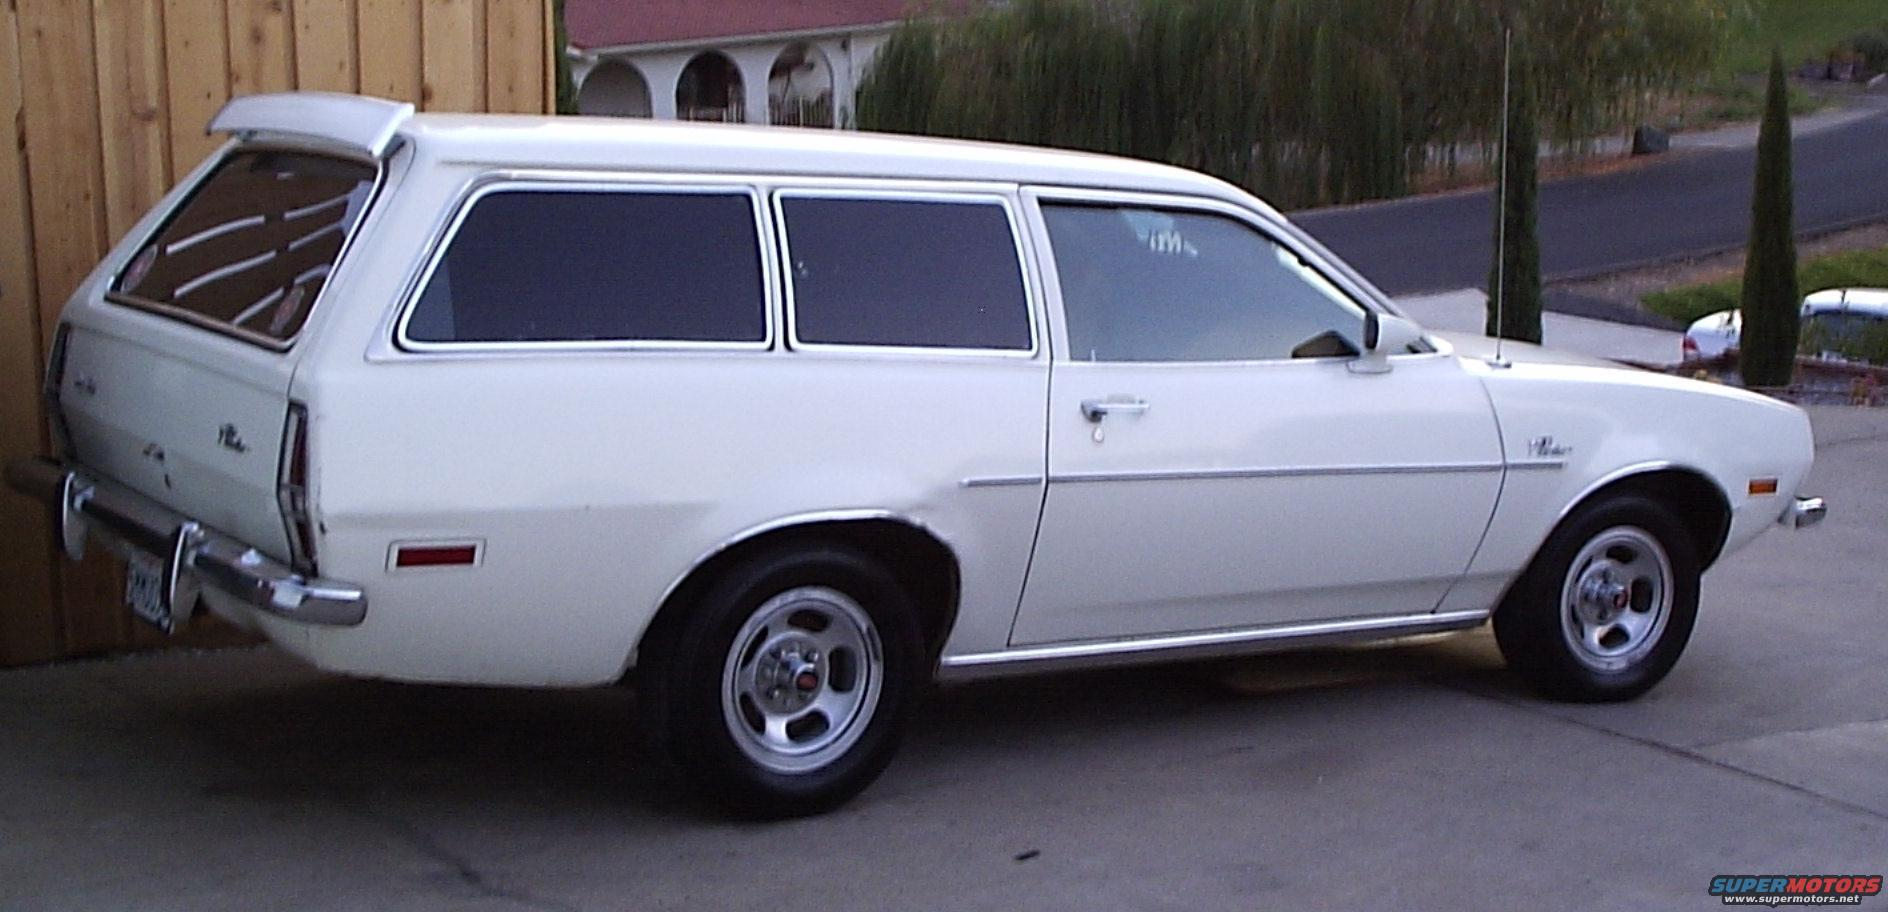 1973 Ford Pinto 73 Pinto Wagon picture | SuperMotors.net